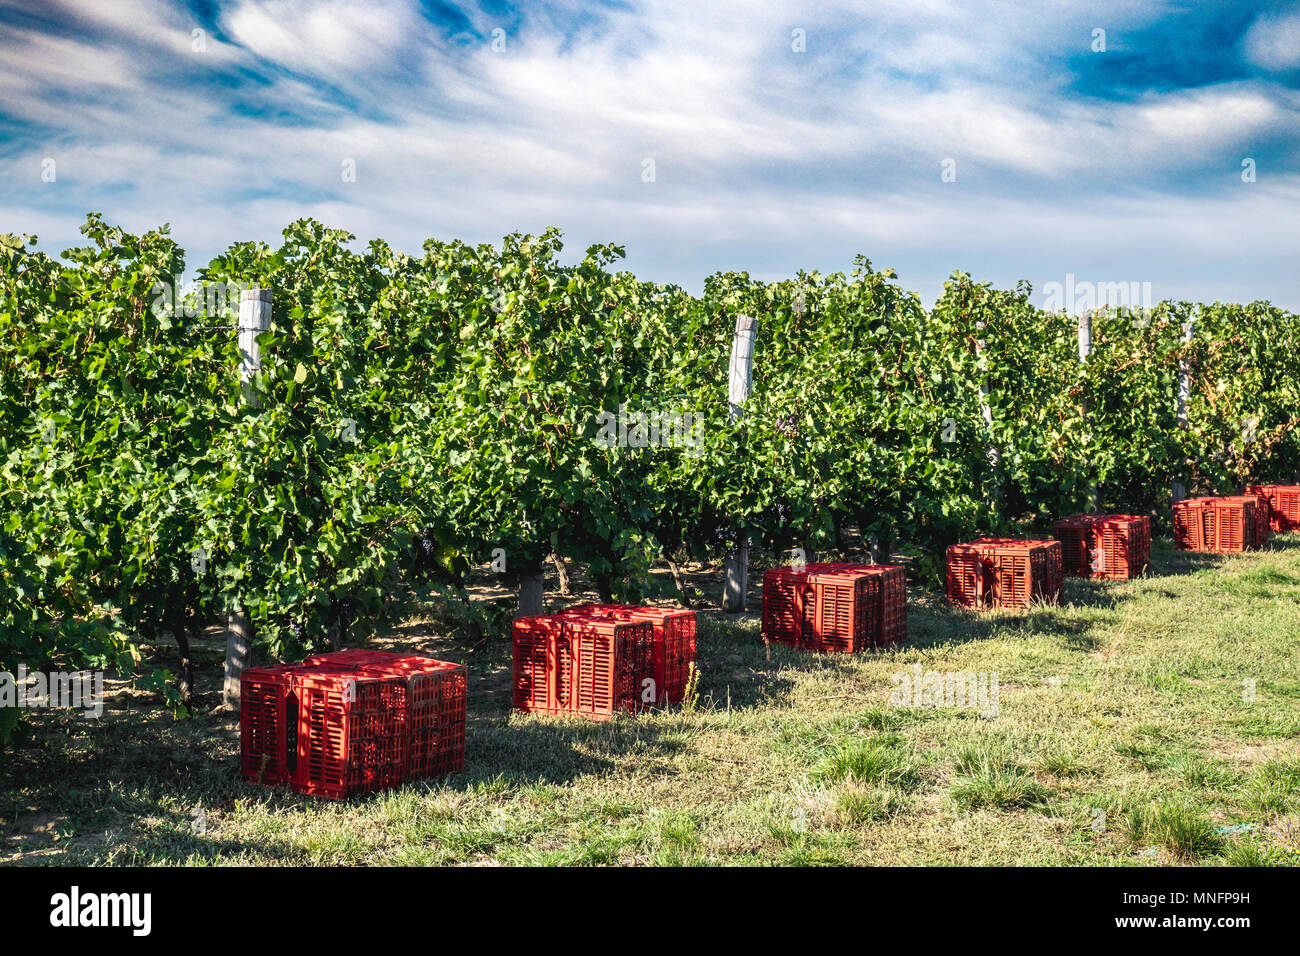 Vineyard harvesting season preparations with red grape colecting boxes. MIddle autumn, colorfull suny day - Stock Image